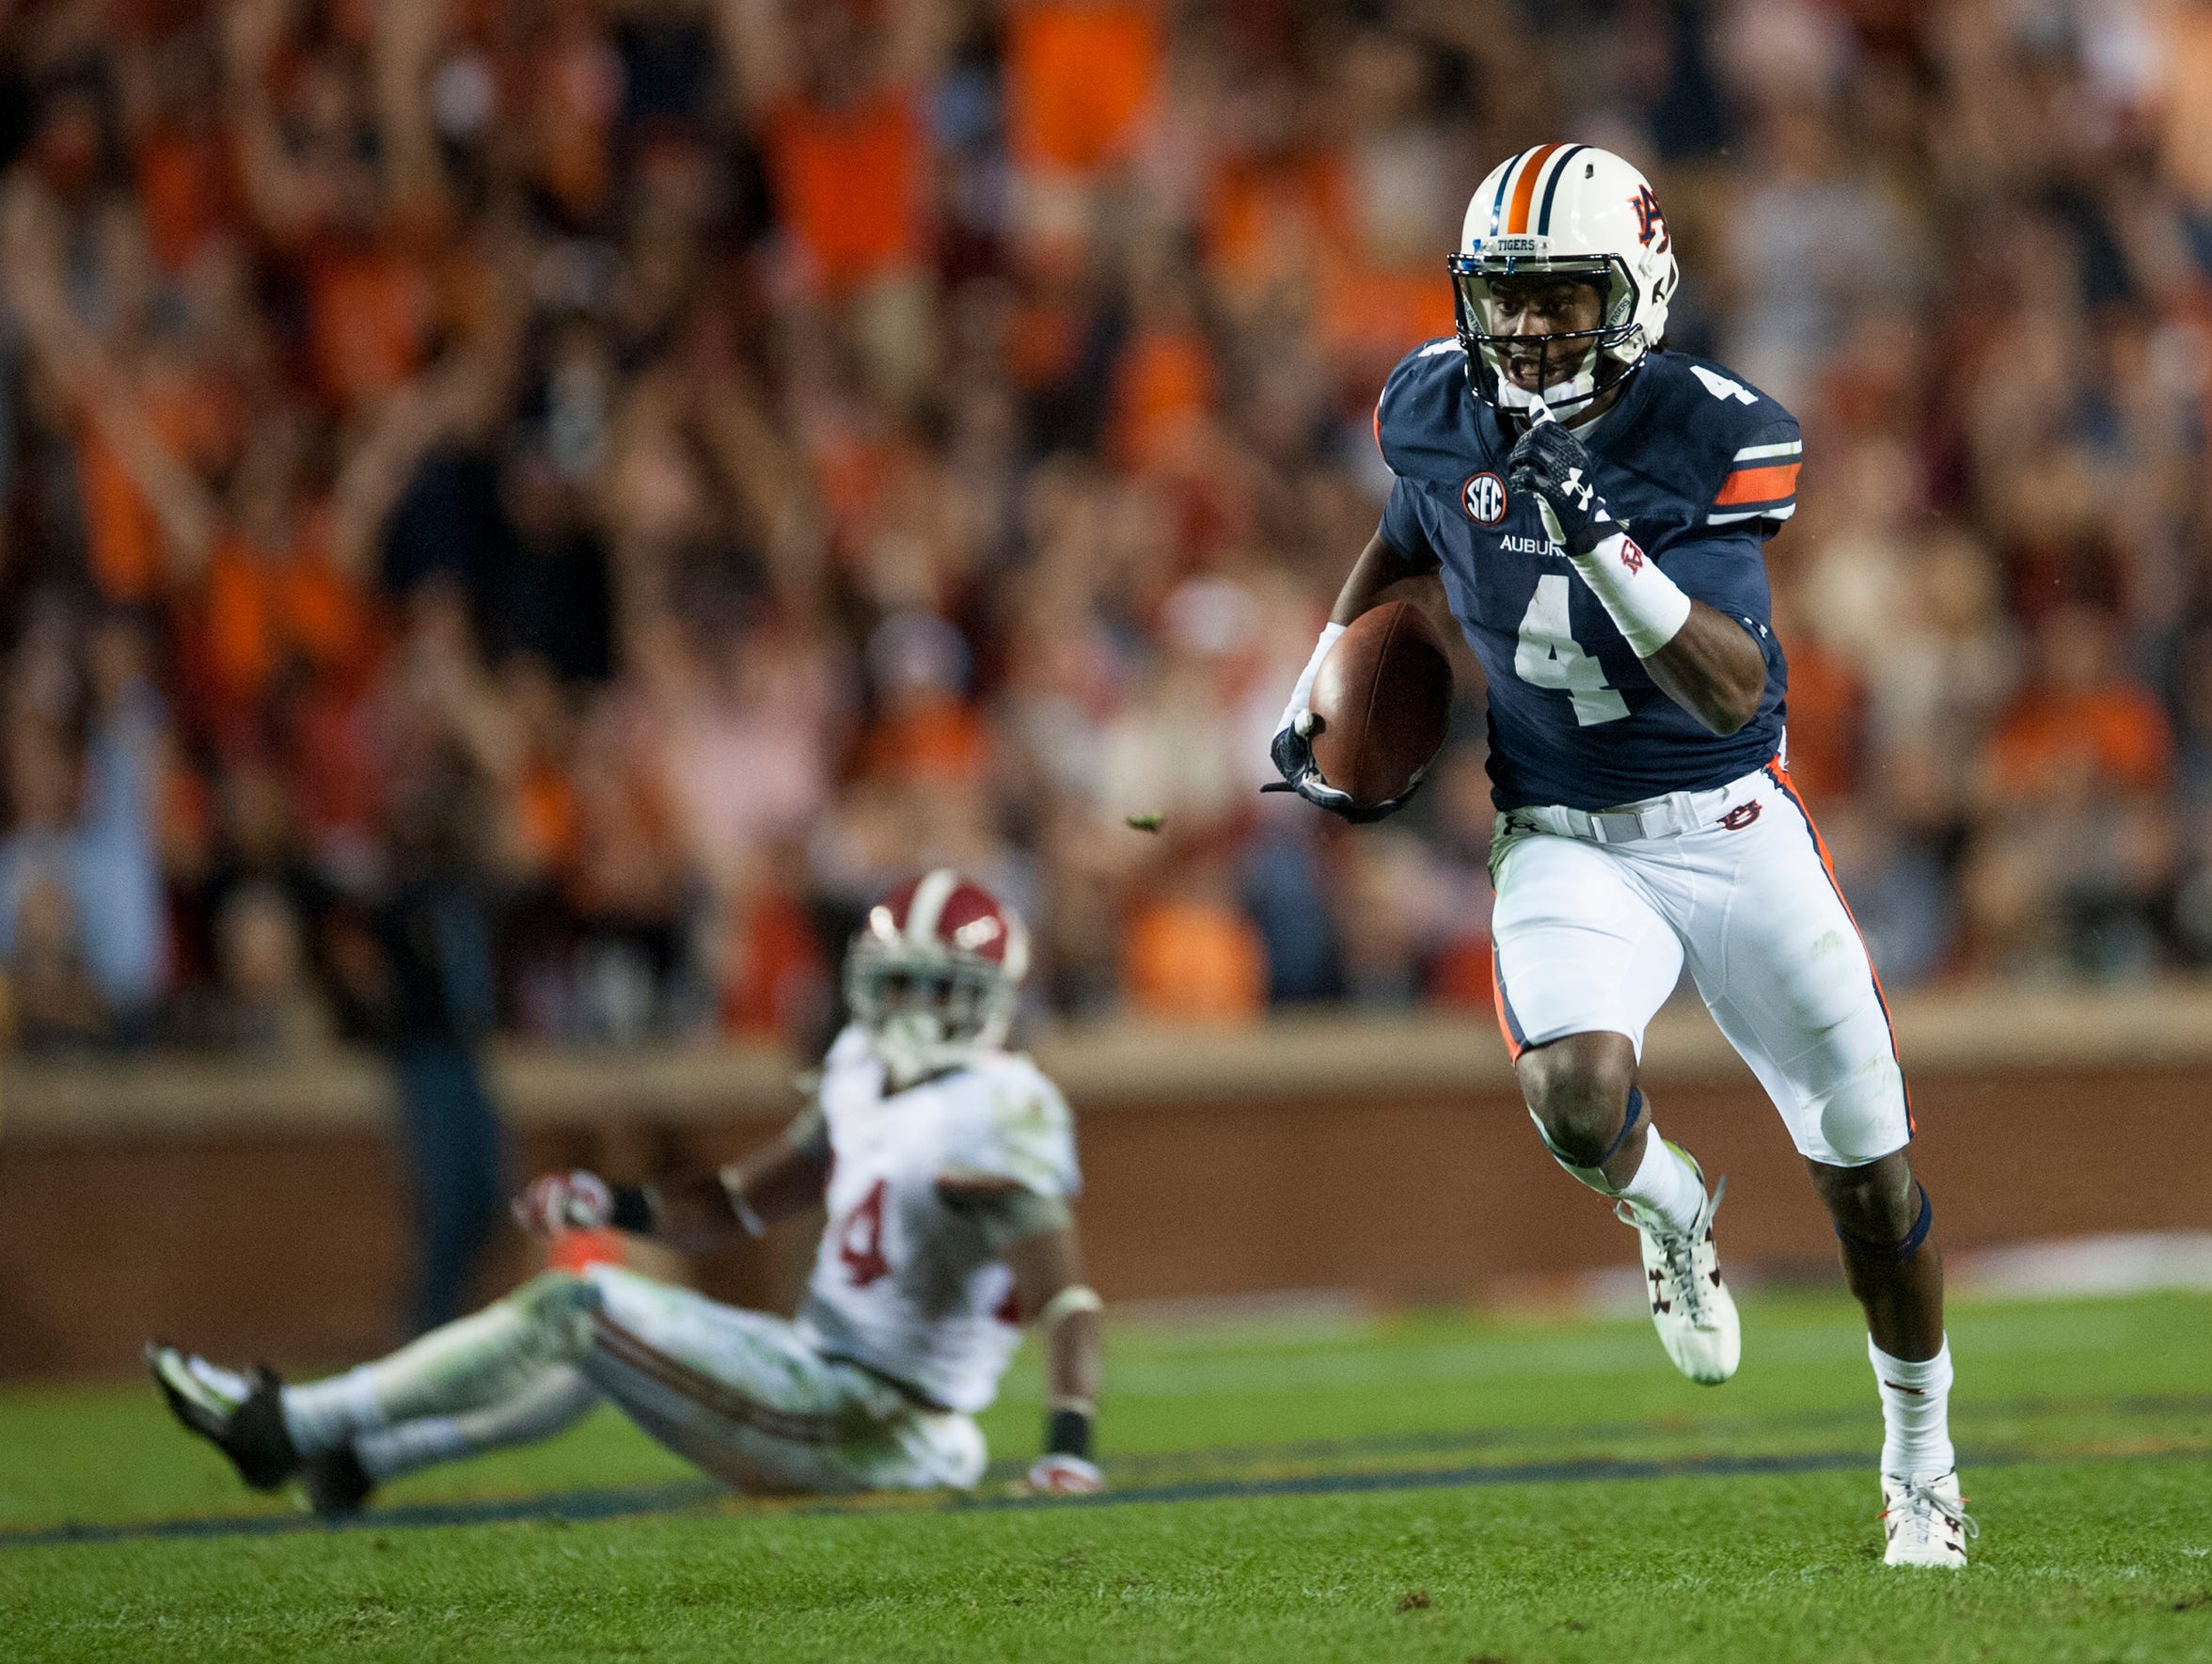 Auburn wide receiver Jason Smith (4) carries in a reception